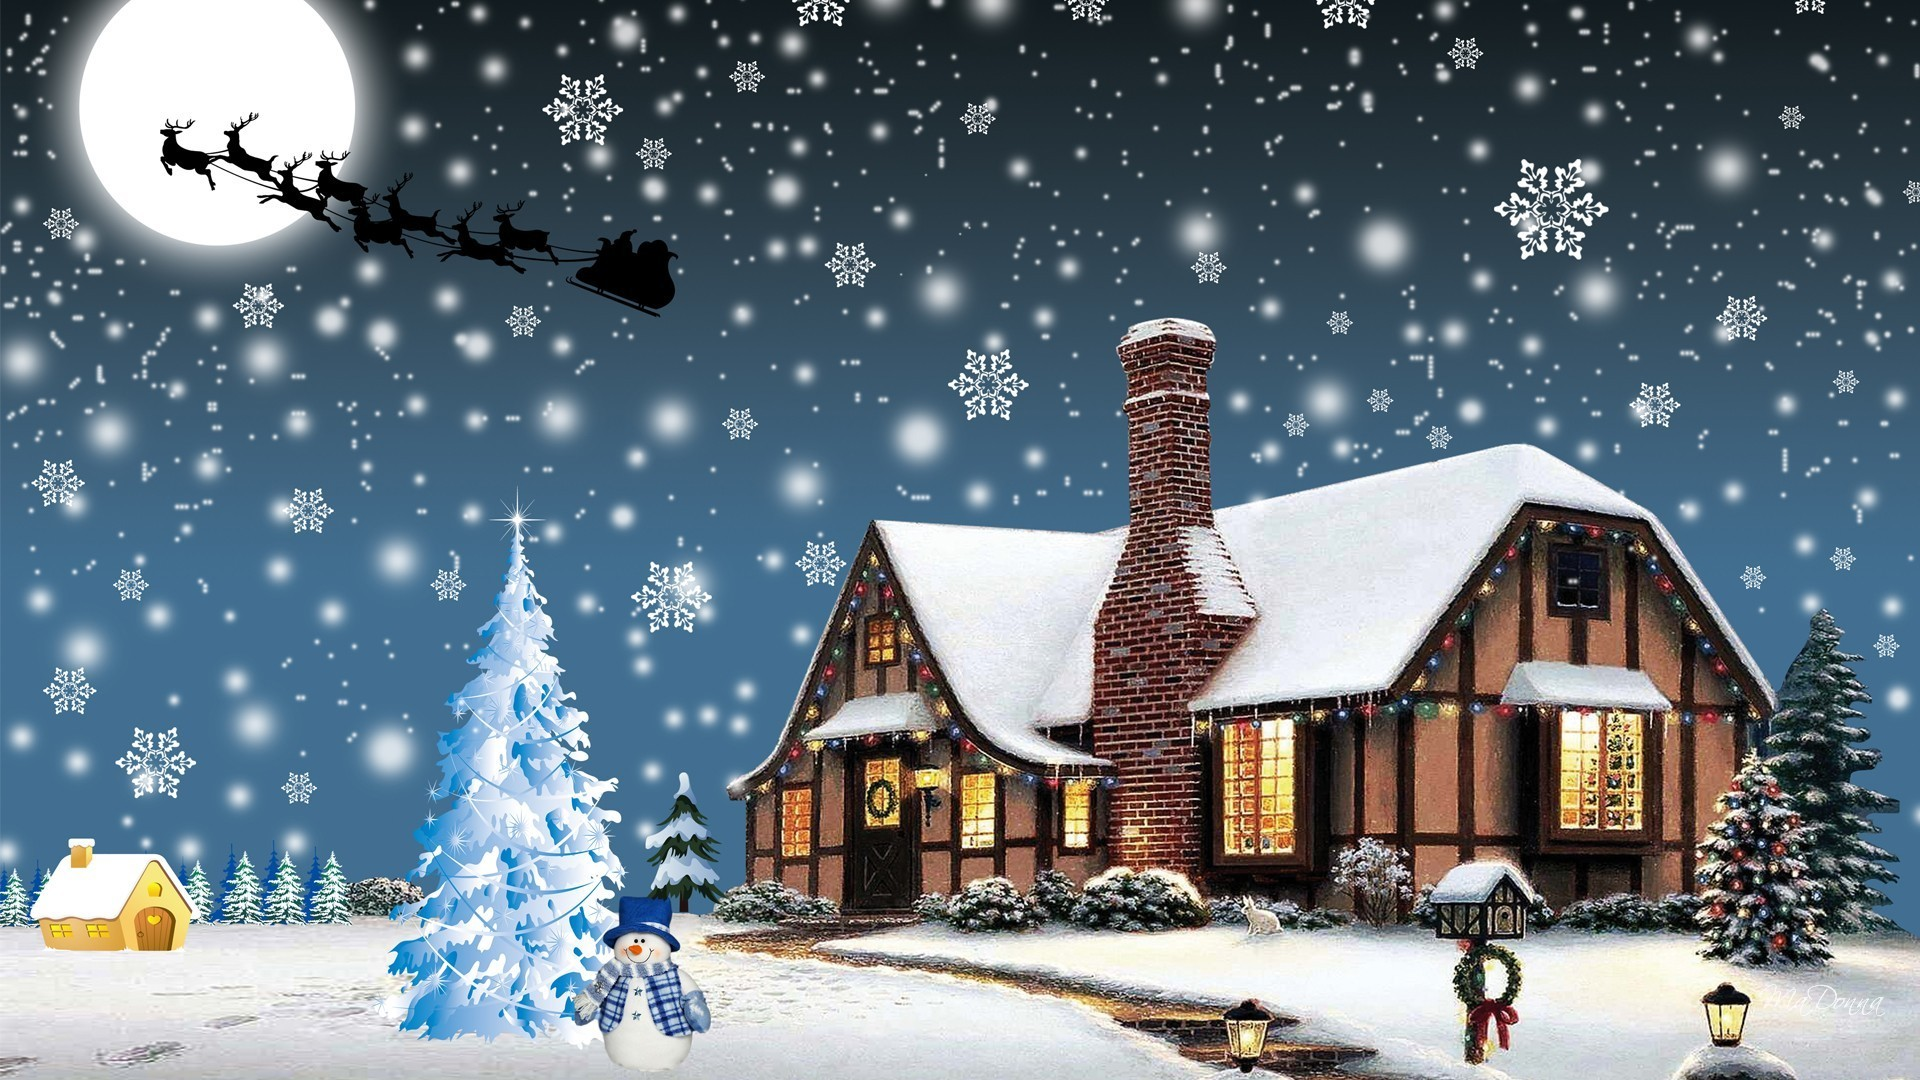 Christmas HD Widescreen Wallpaper 1920x1080 (61+ Images